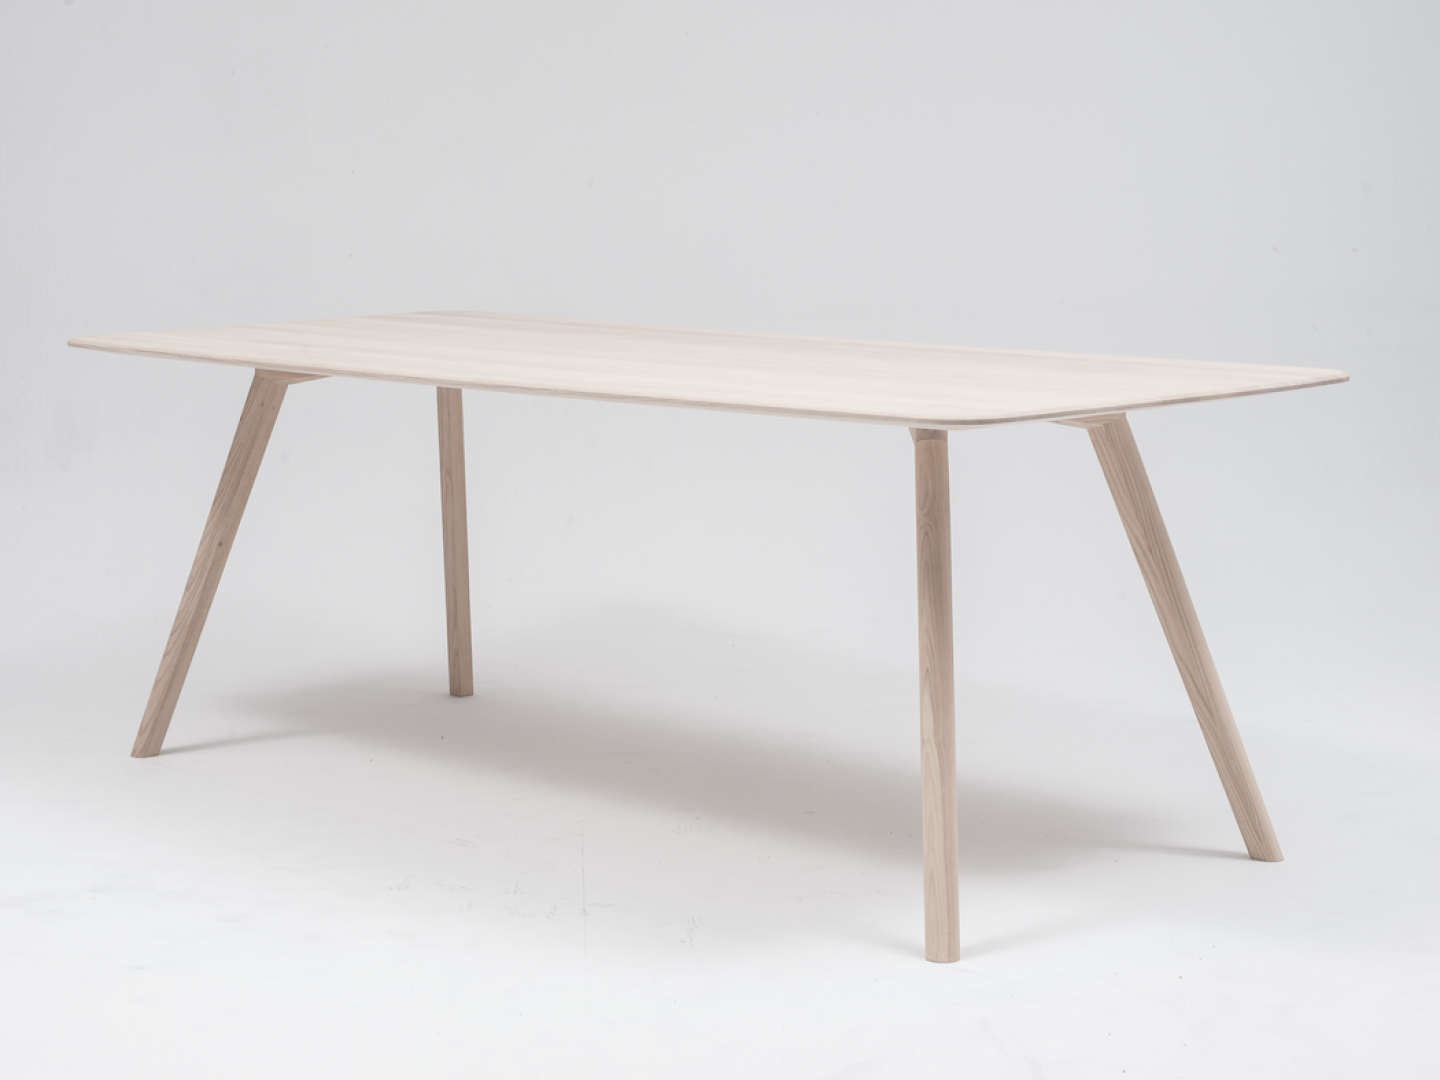 objekte-unserer-tage-08-studio-01-meyer-table-(high-res)